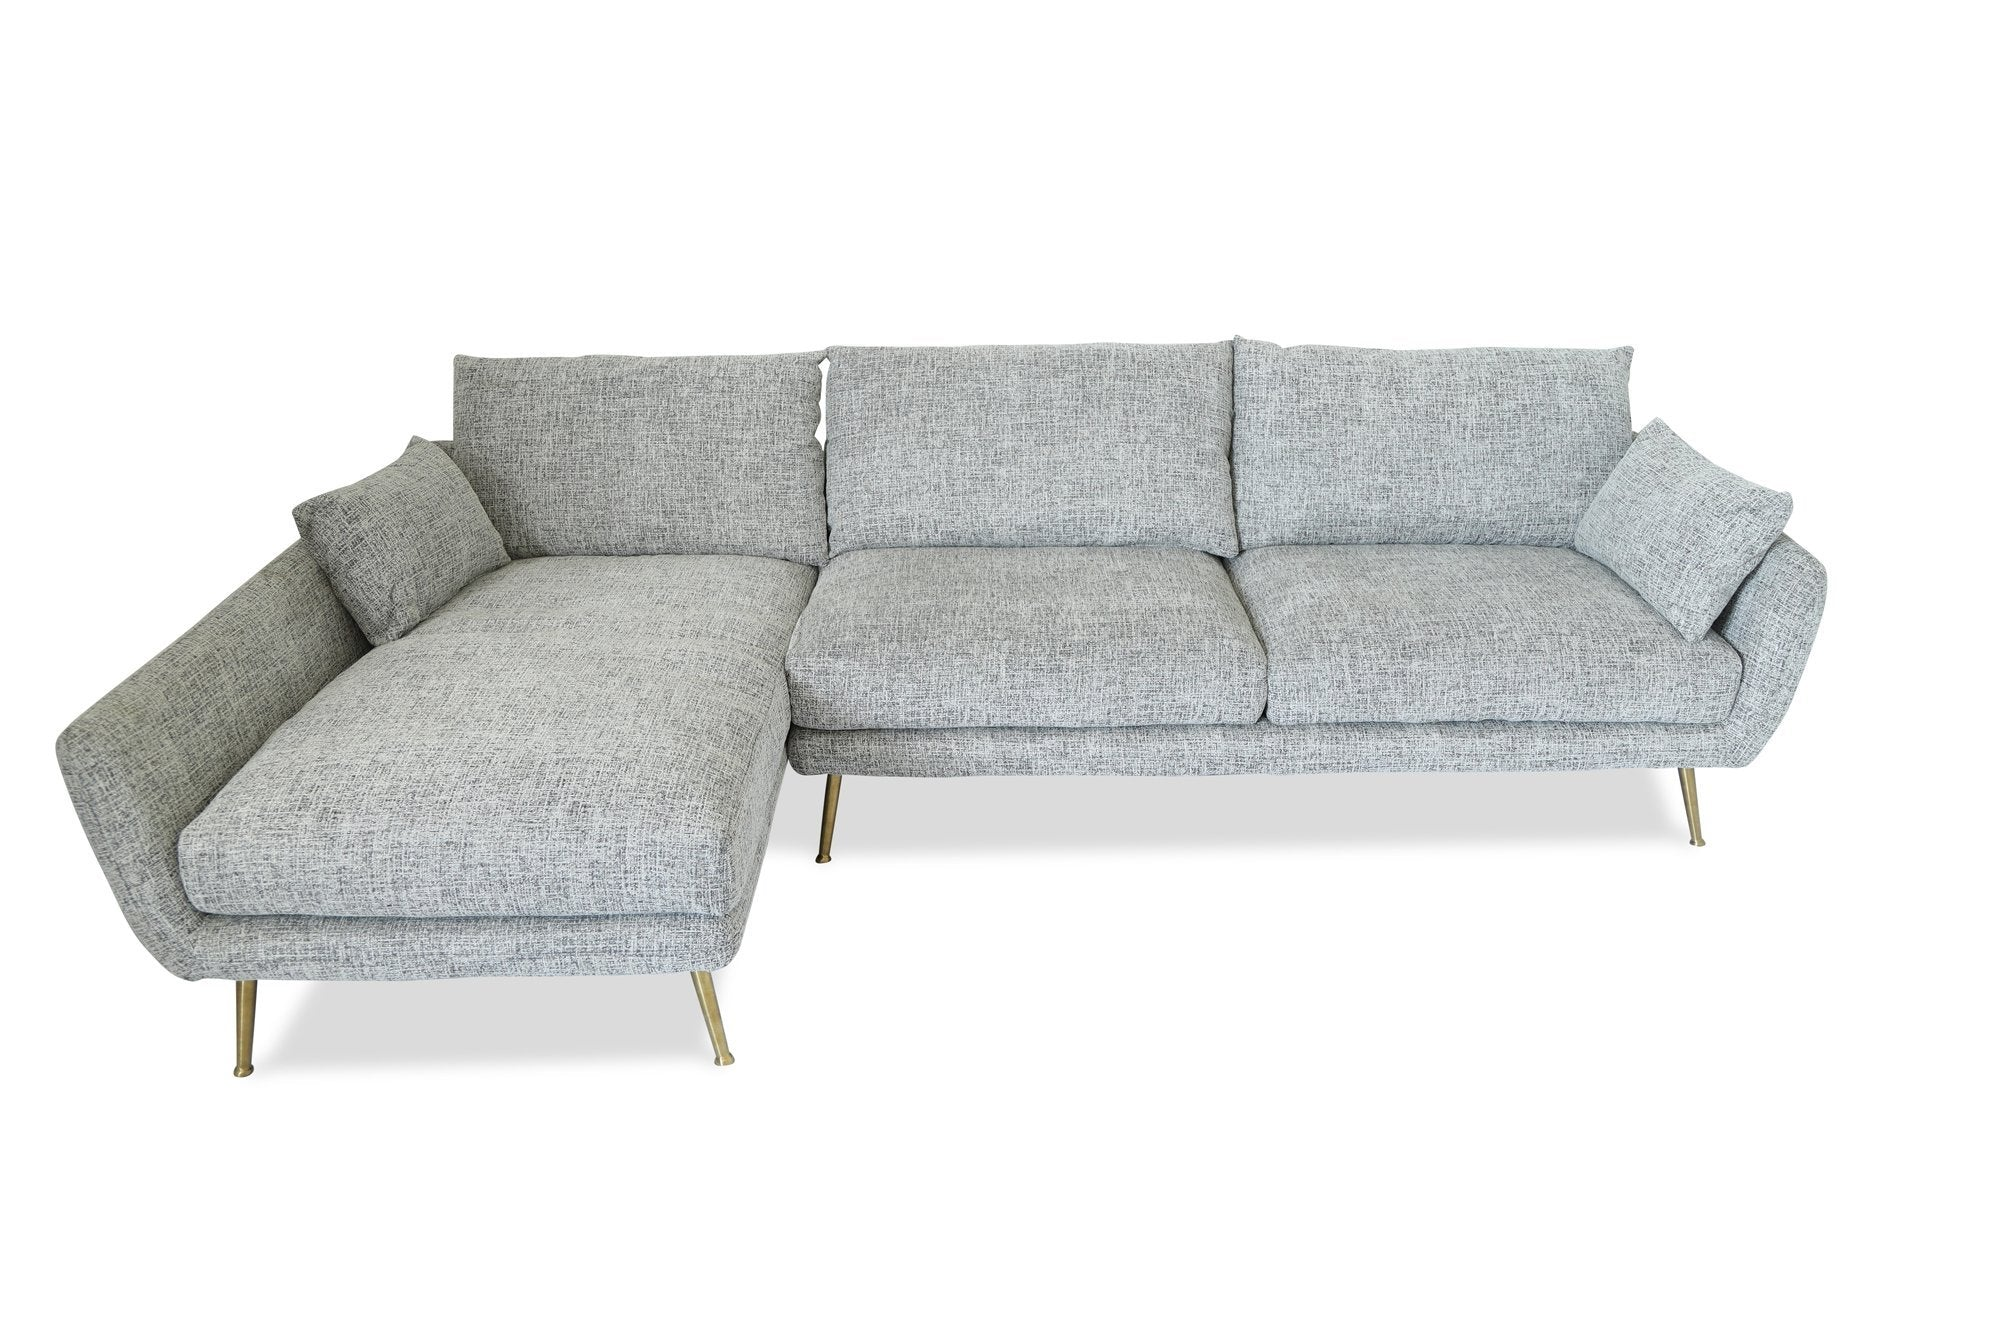 Buy Edloe Finch Ef Zx Sc002l Harlow Mid Century Modern Sectional Sofa Fulton Grey Left Facing At Contemporary Furniture Warehouse